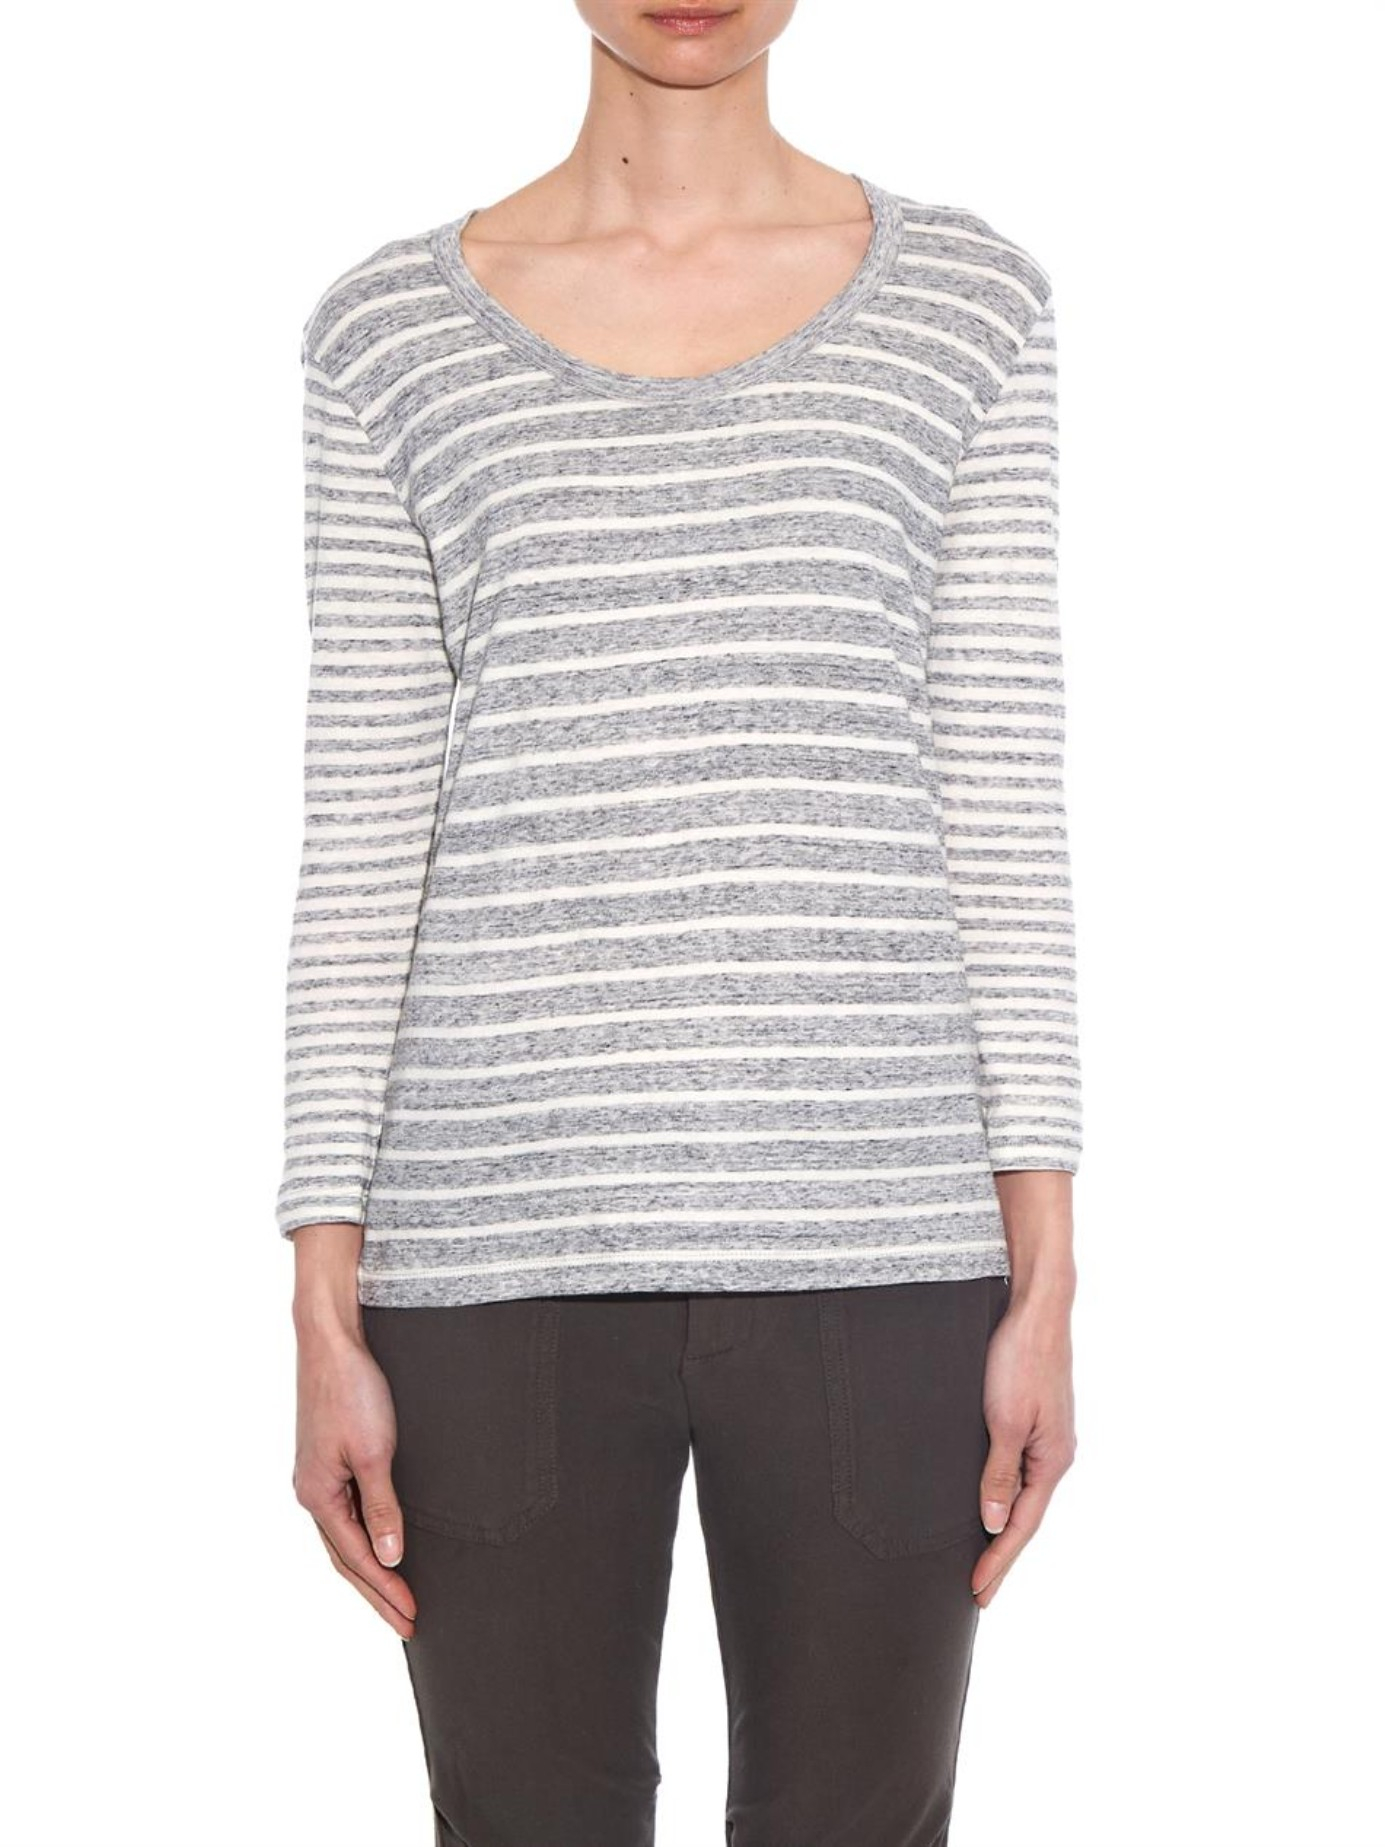 Lyst james perse collage stripe cotton jersey t shirt in for Grey striped t shirt